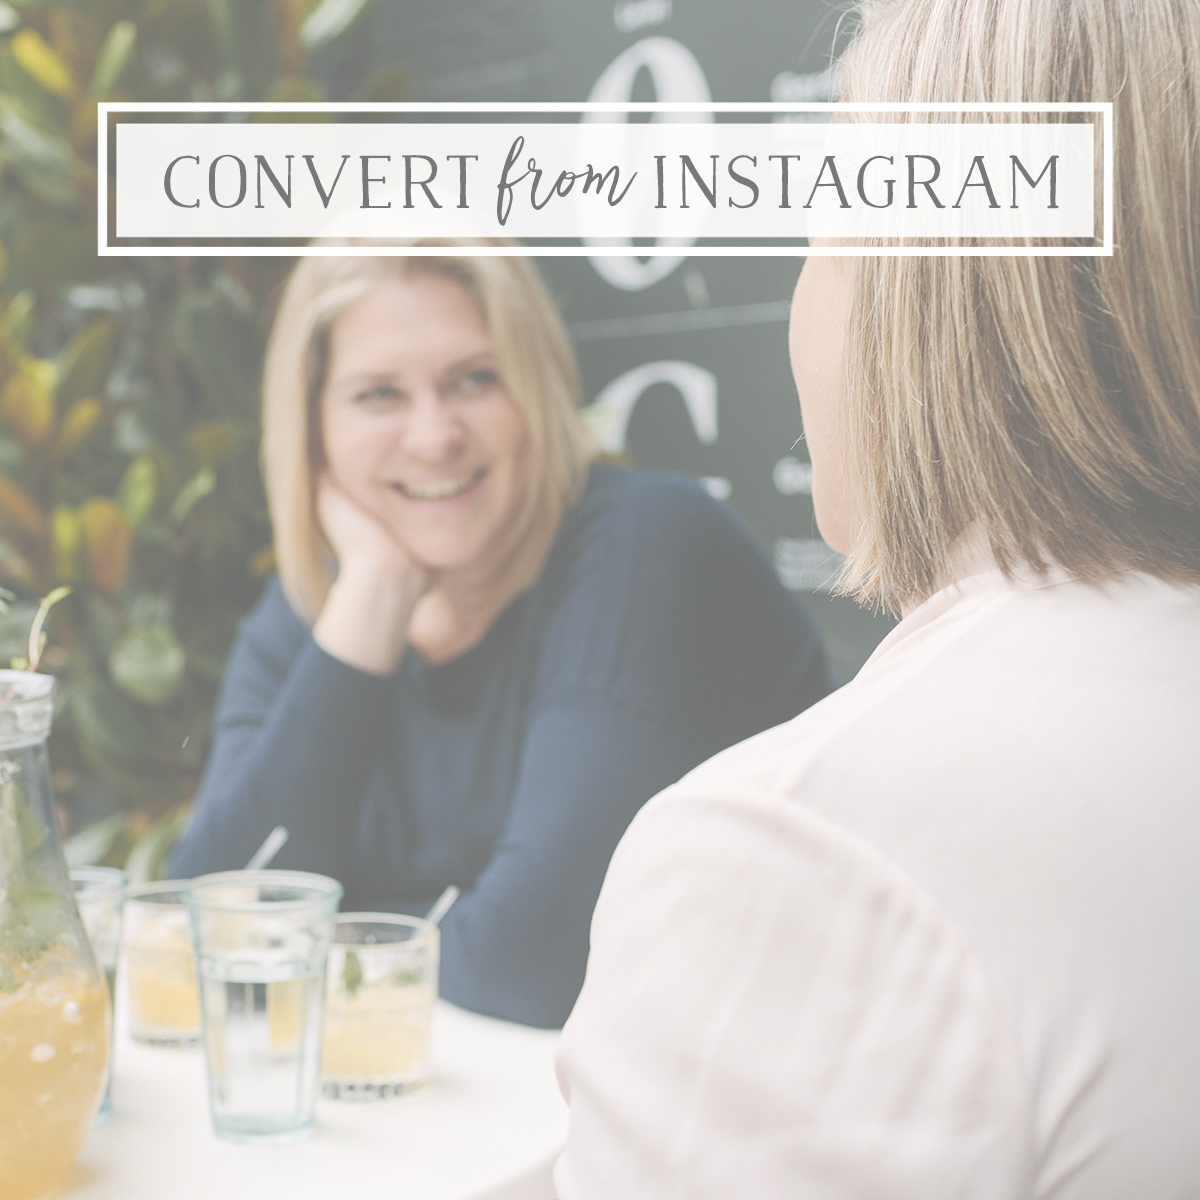 Converting Clients from Instagram